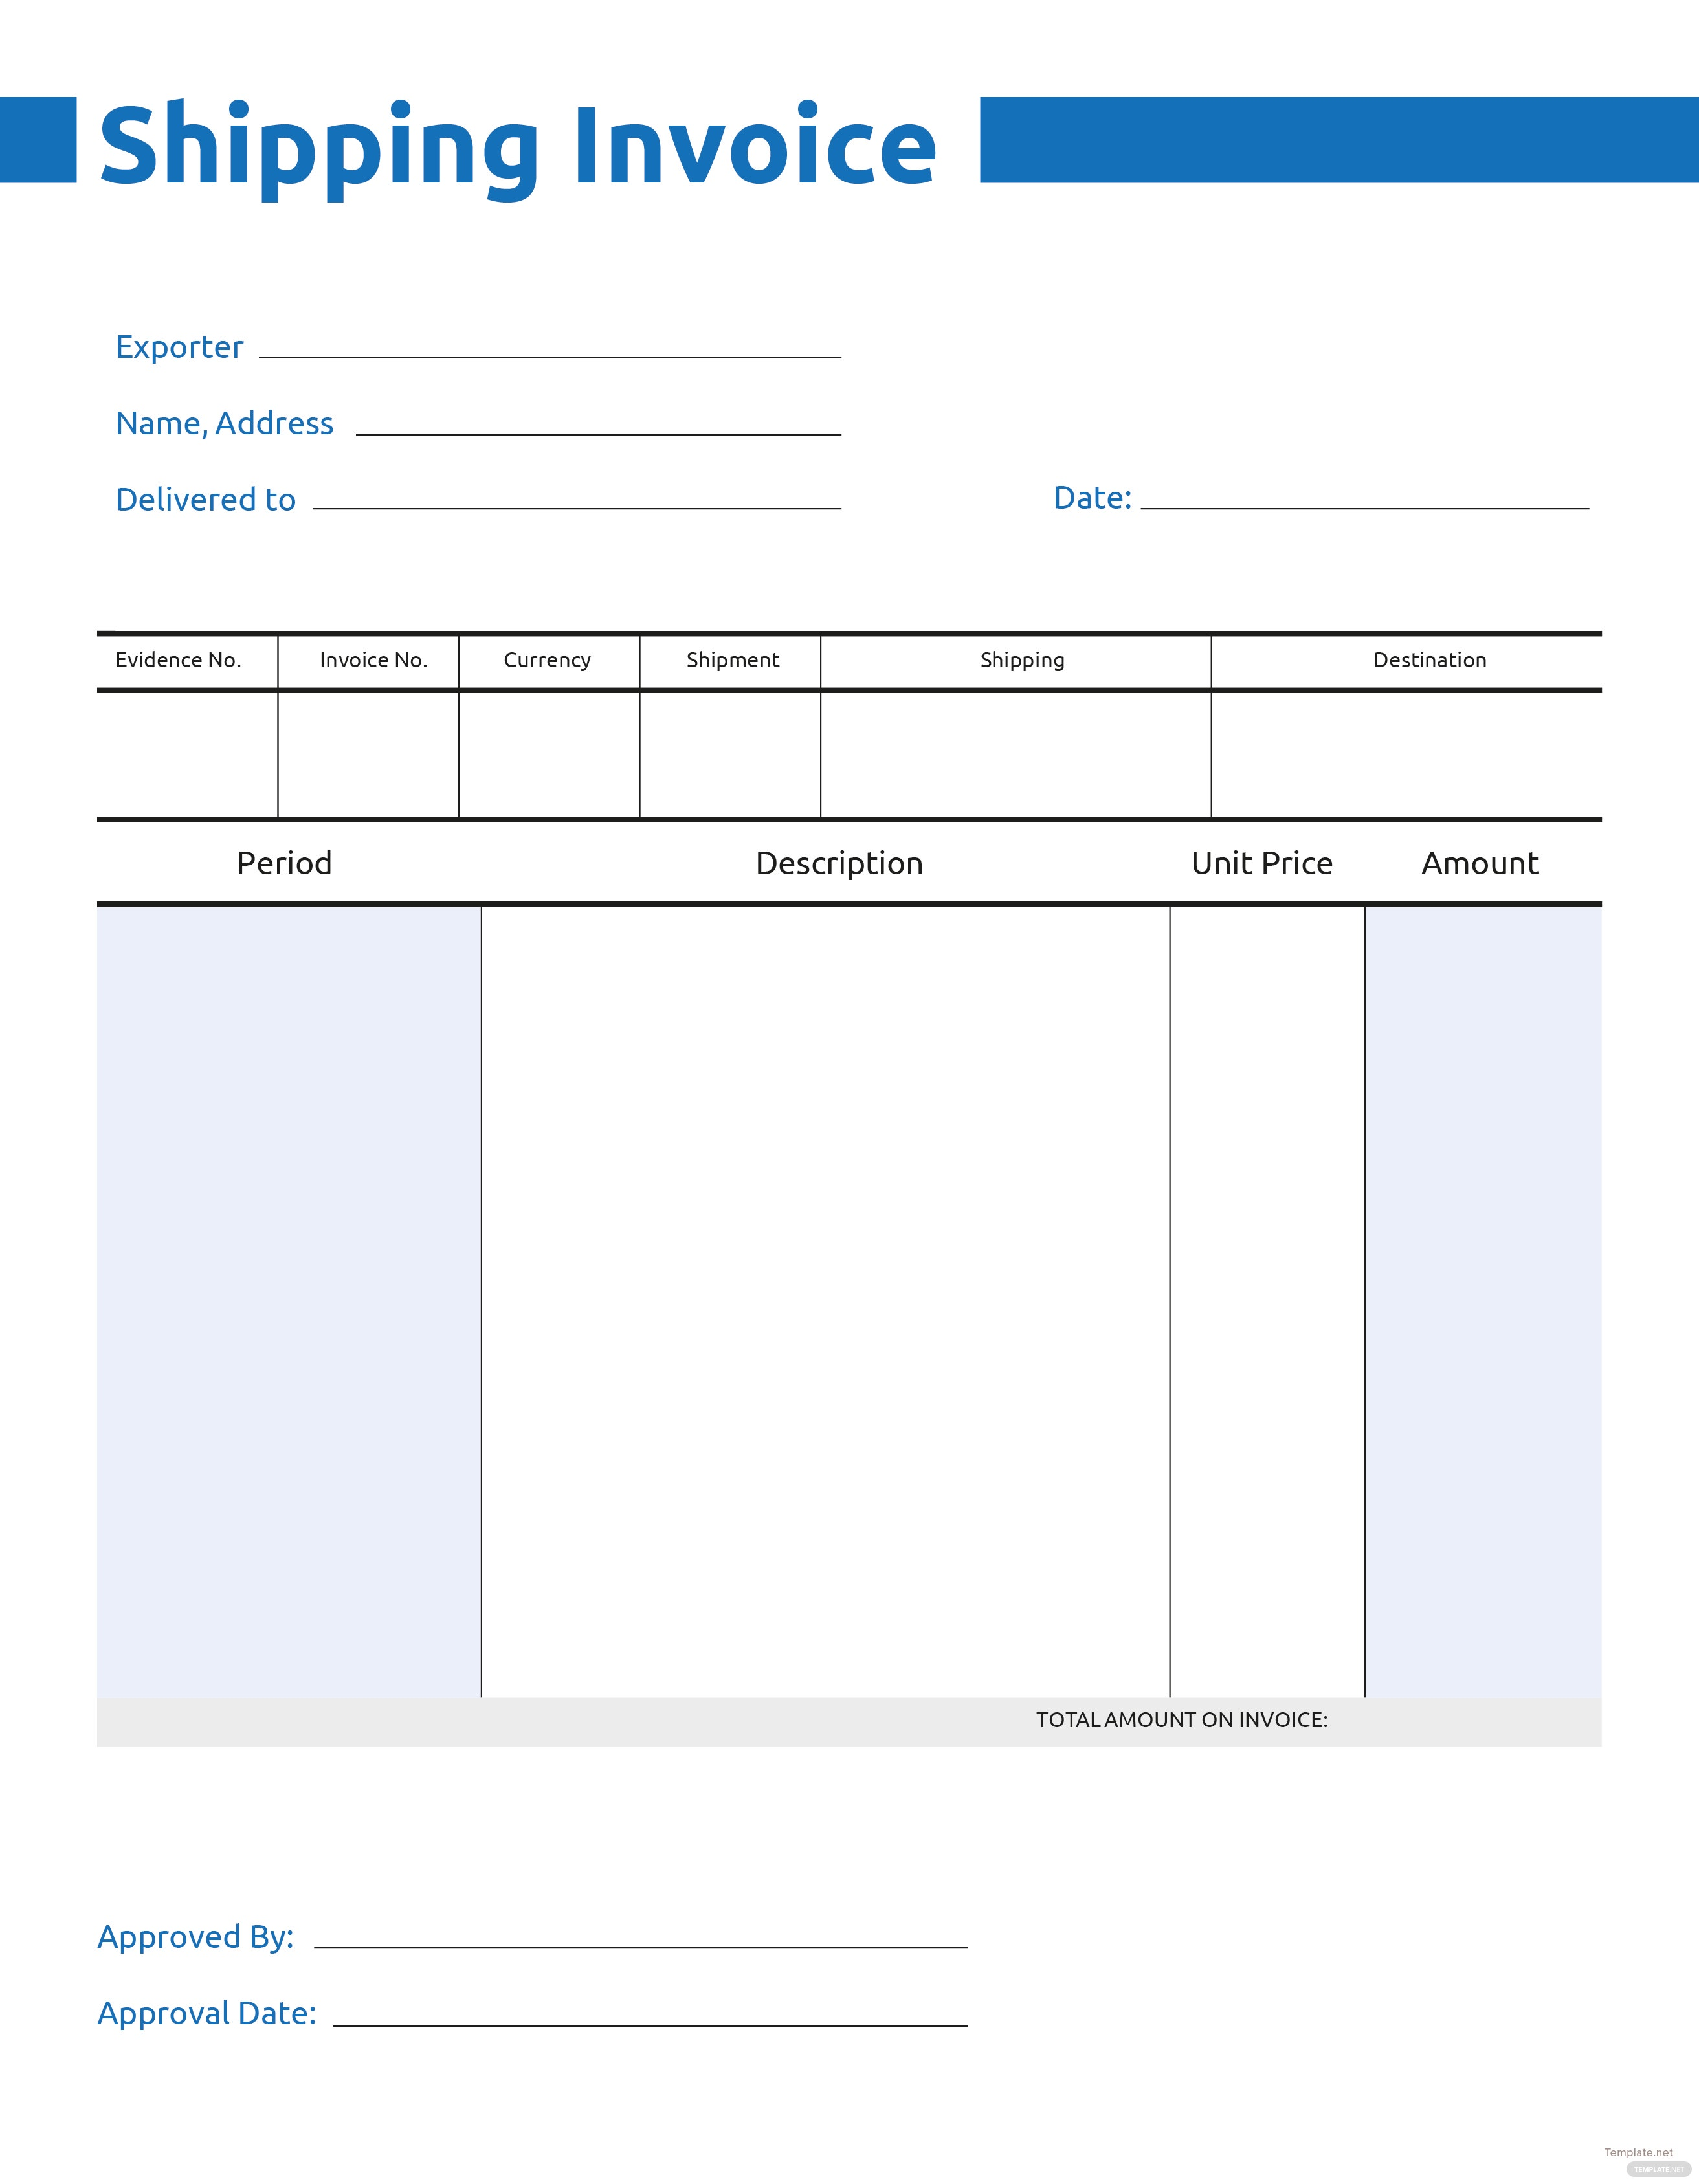 Free Commercial Shipping Invoice Template In Adobe Illustrator - Shipping invoice template